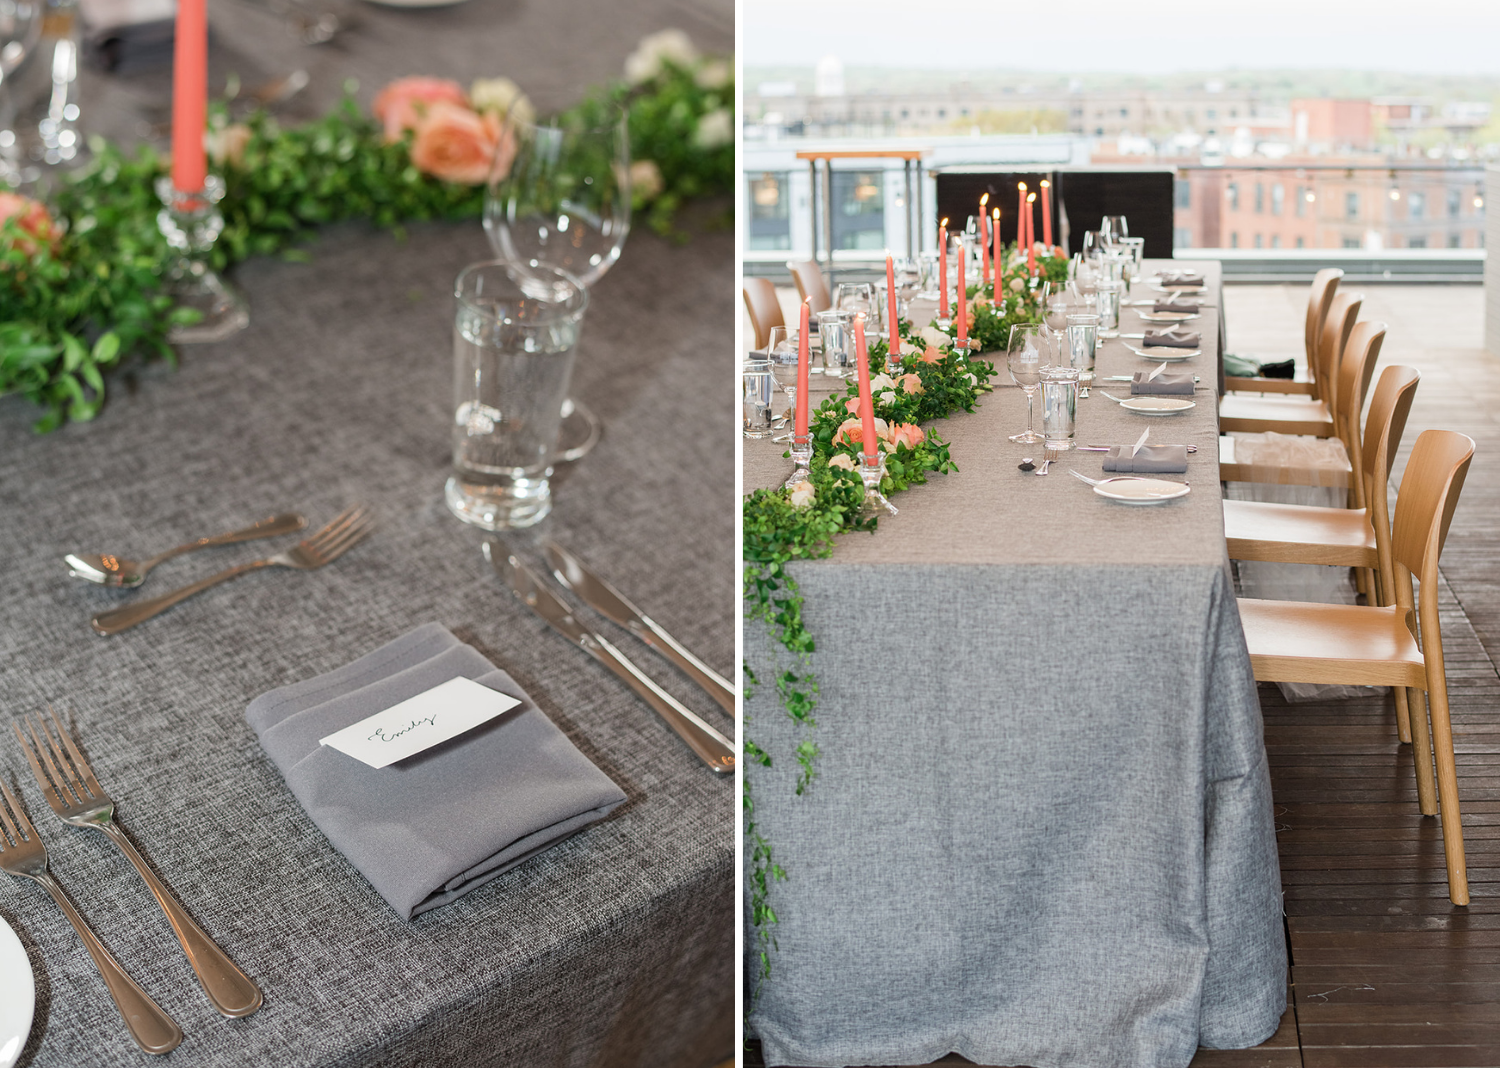 grey tablecloths along with an array of green and orange foliage covers a wedding table as their main centerpiece